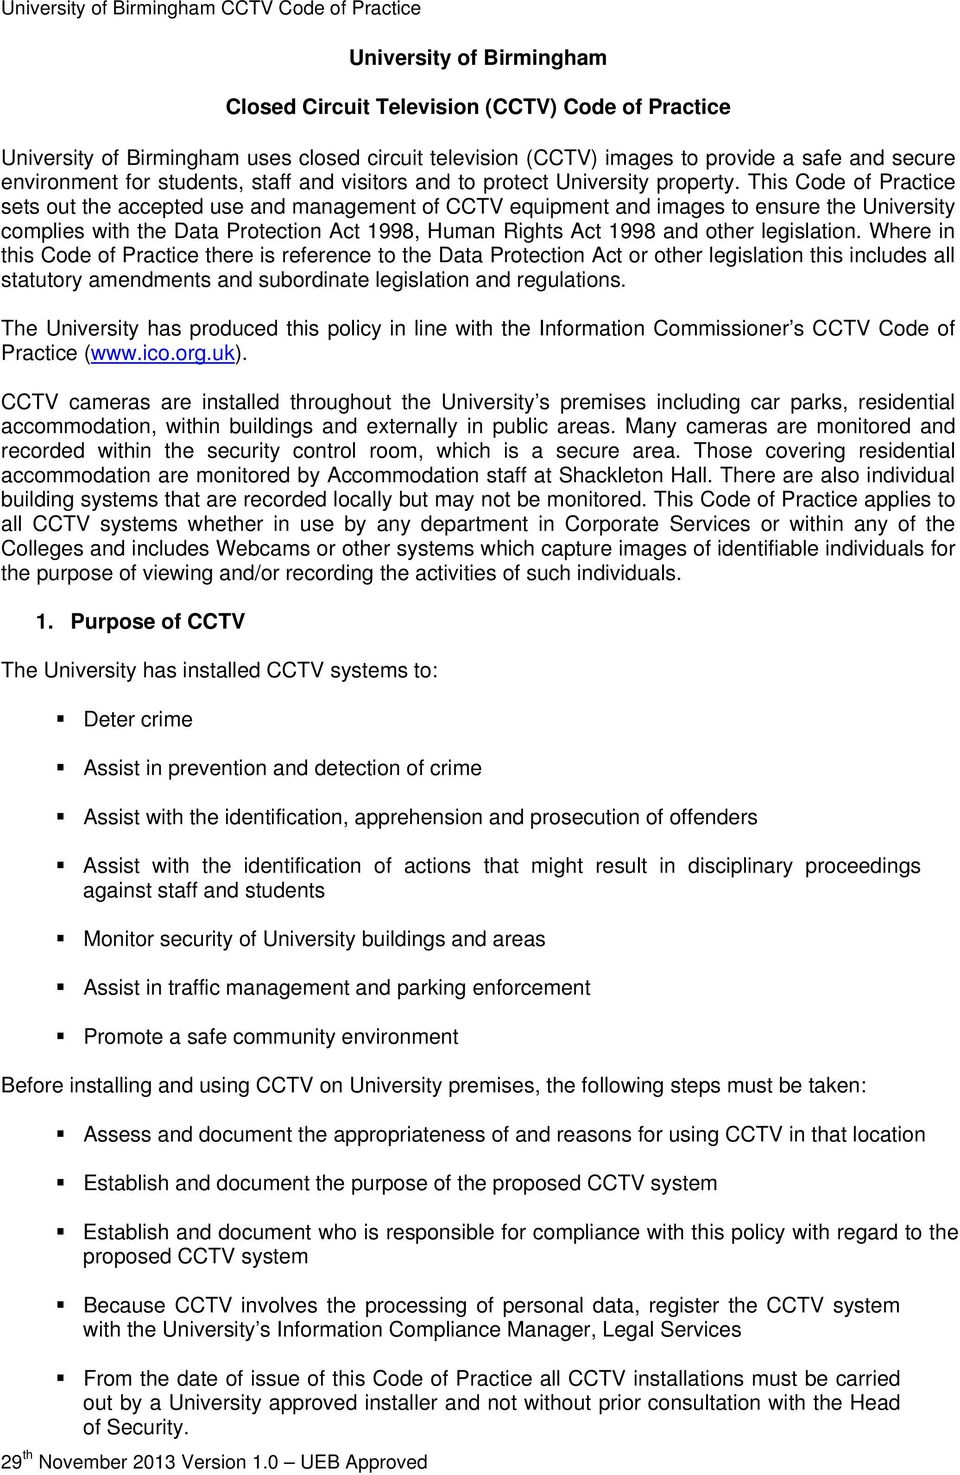 This Code of Practice sets out the accepted use and management of CCTV equipment and images to ensure the University complies with the Data Protection Act 1998, Human Rights Act 1998 and other